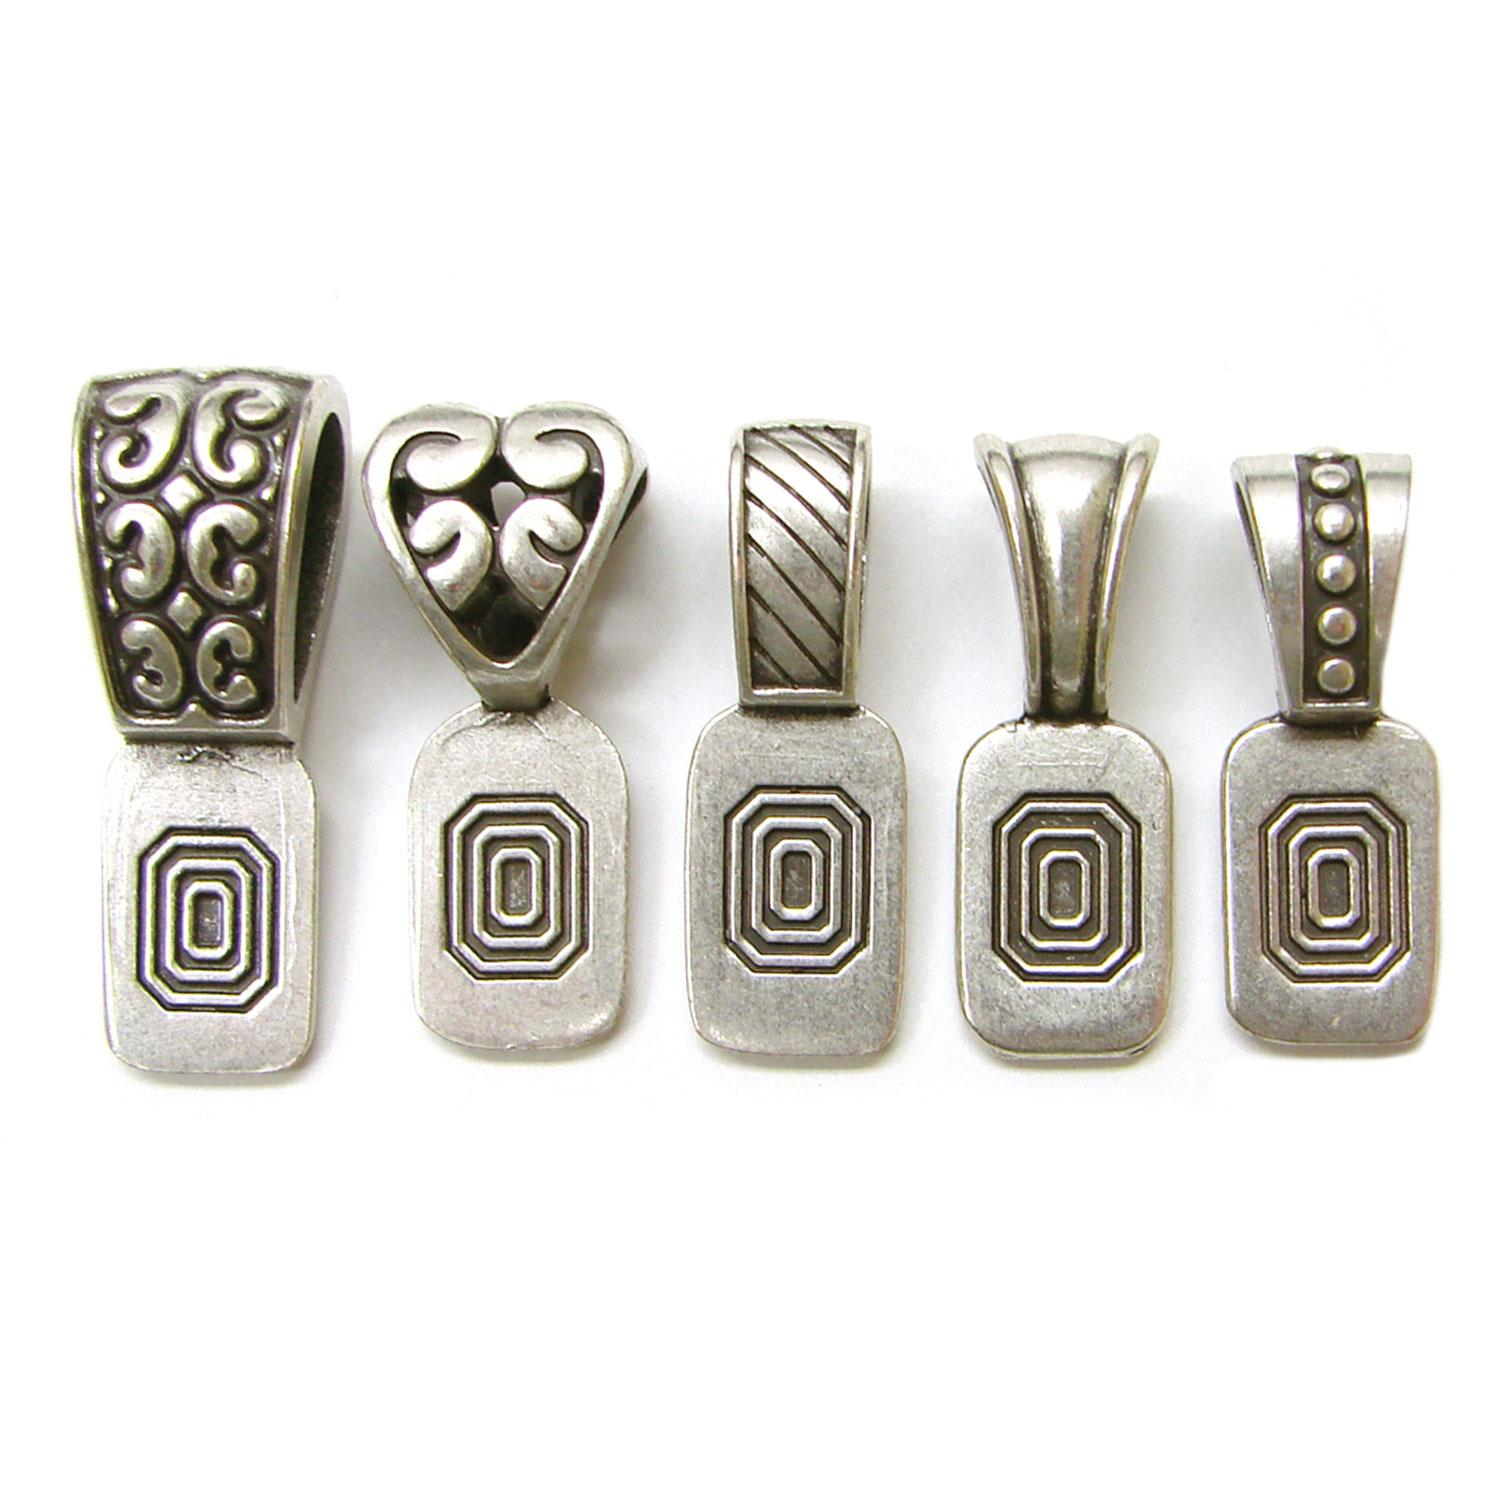 Antique Silver Variety Art Bails - 5 Pack